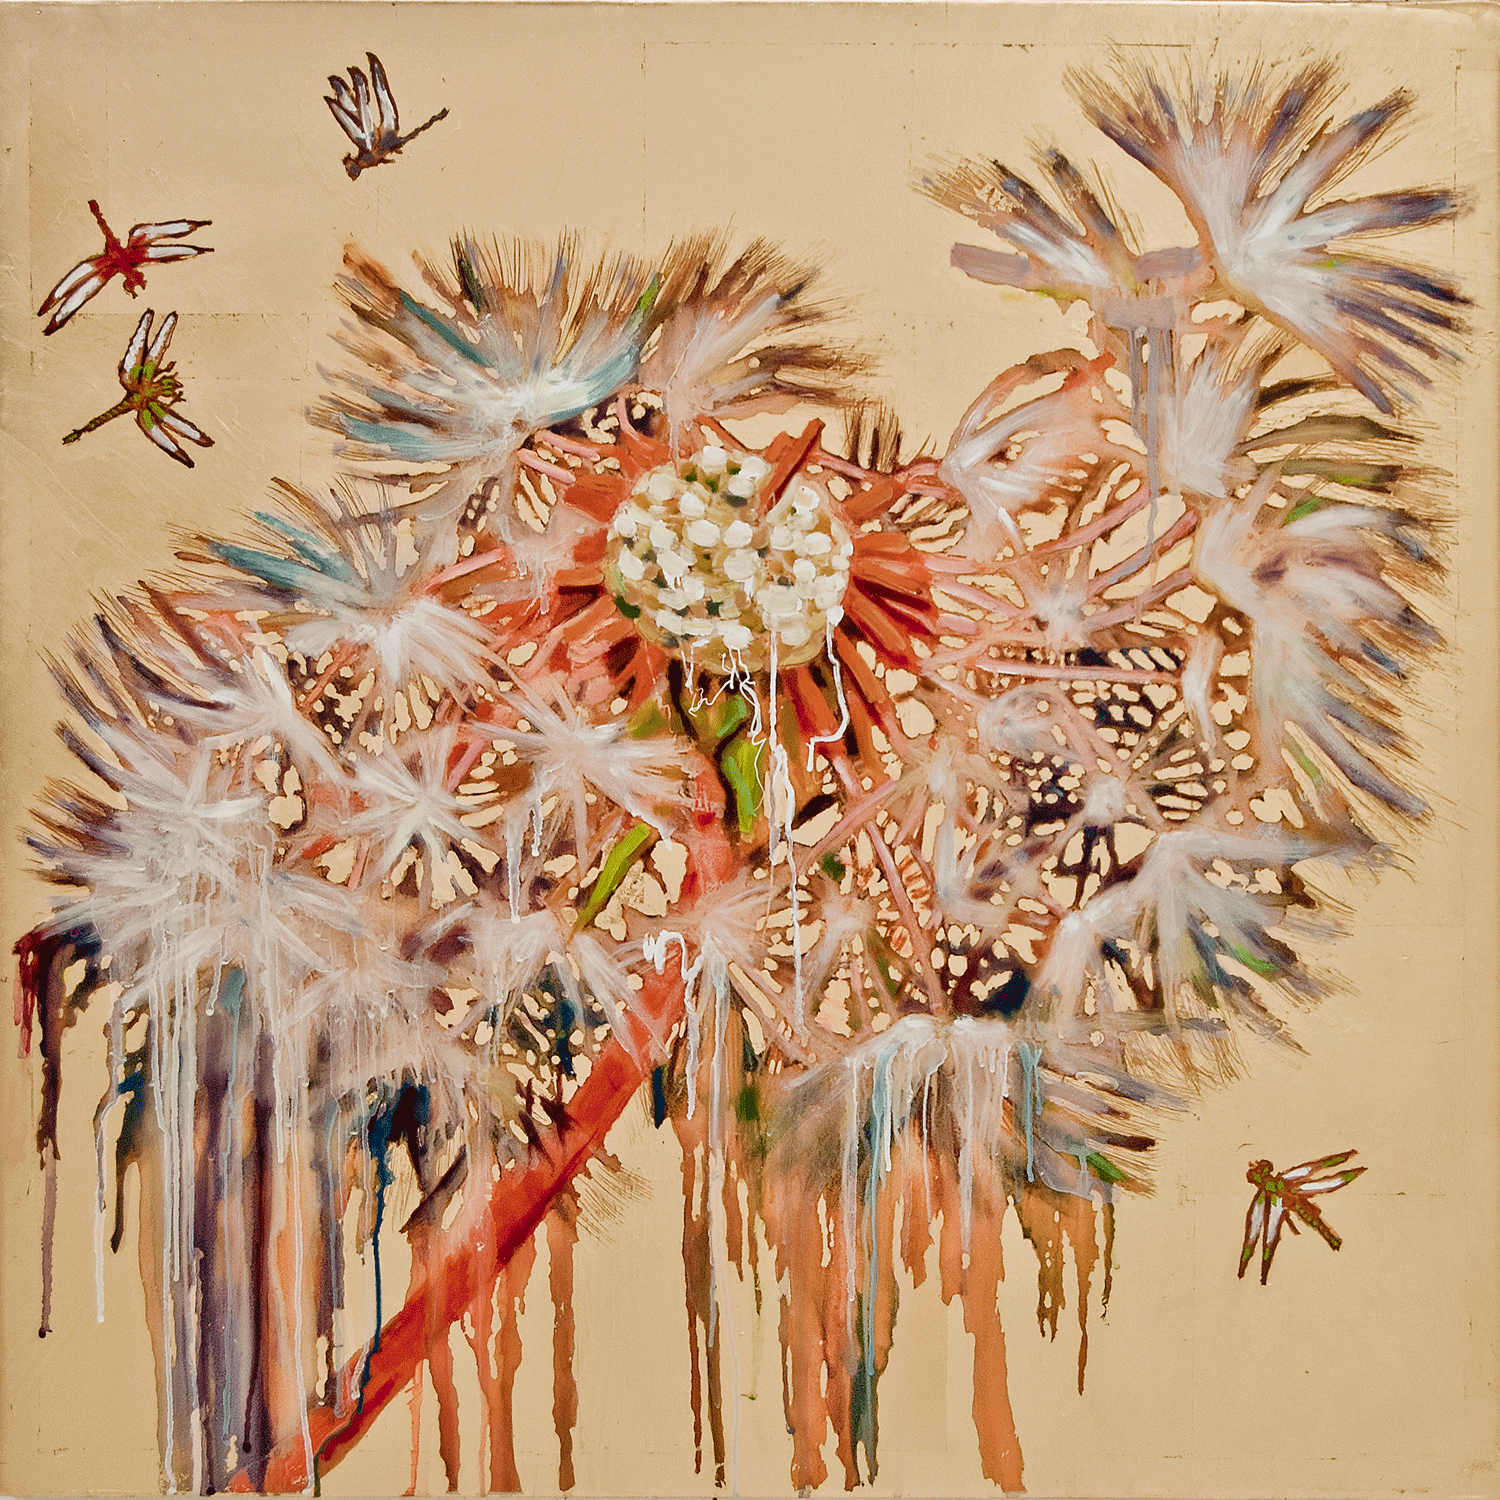 Dandelion and Dragonflies, 2017, Mixed Media, 36 x 36 Inches